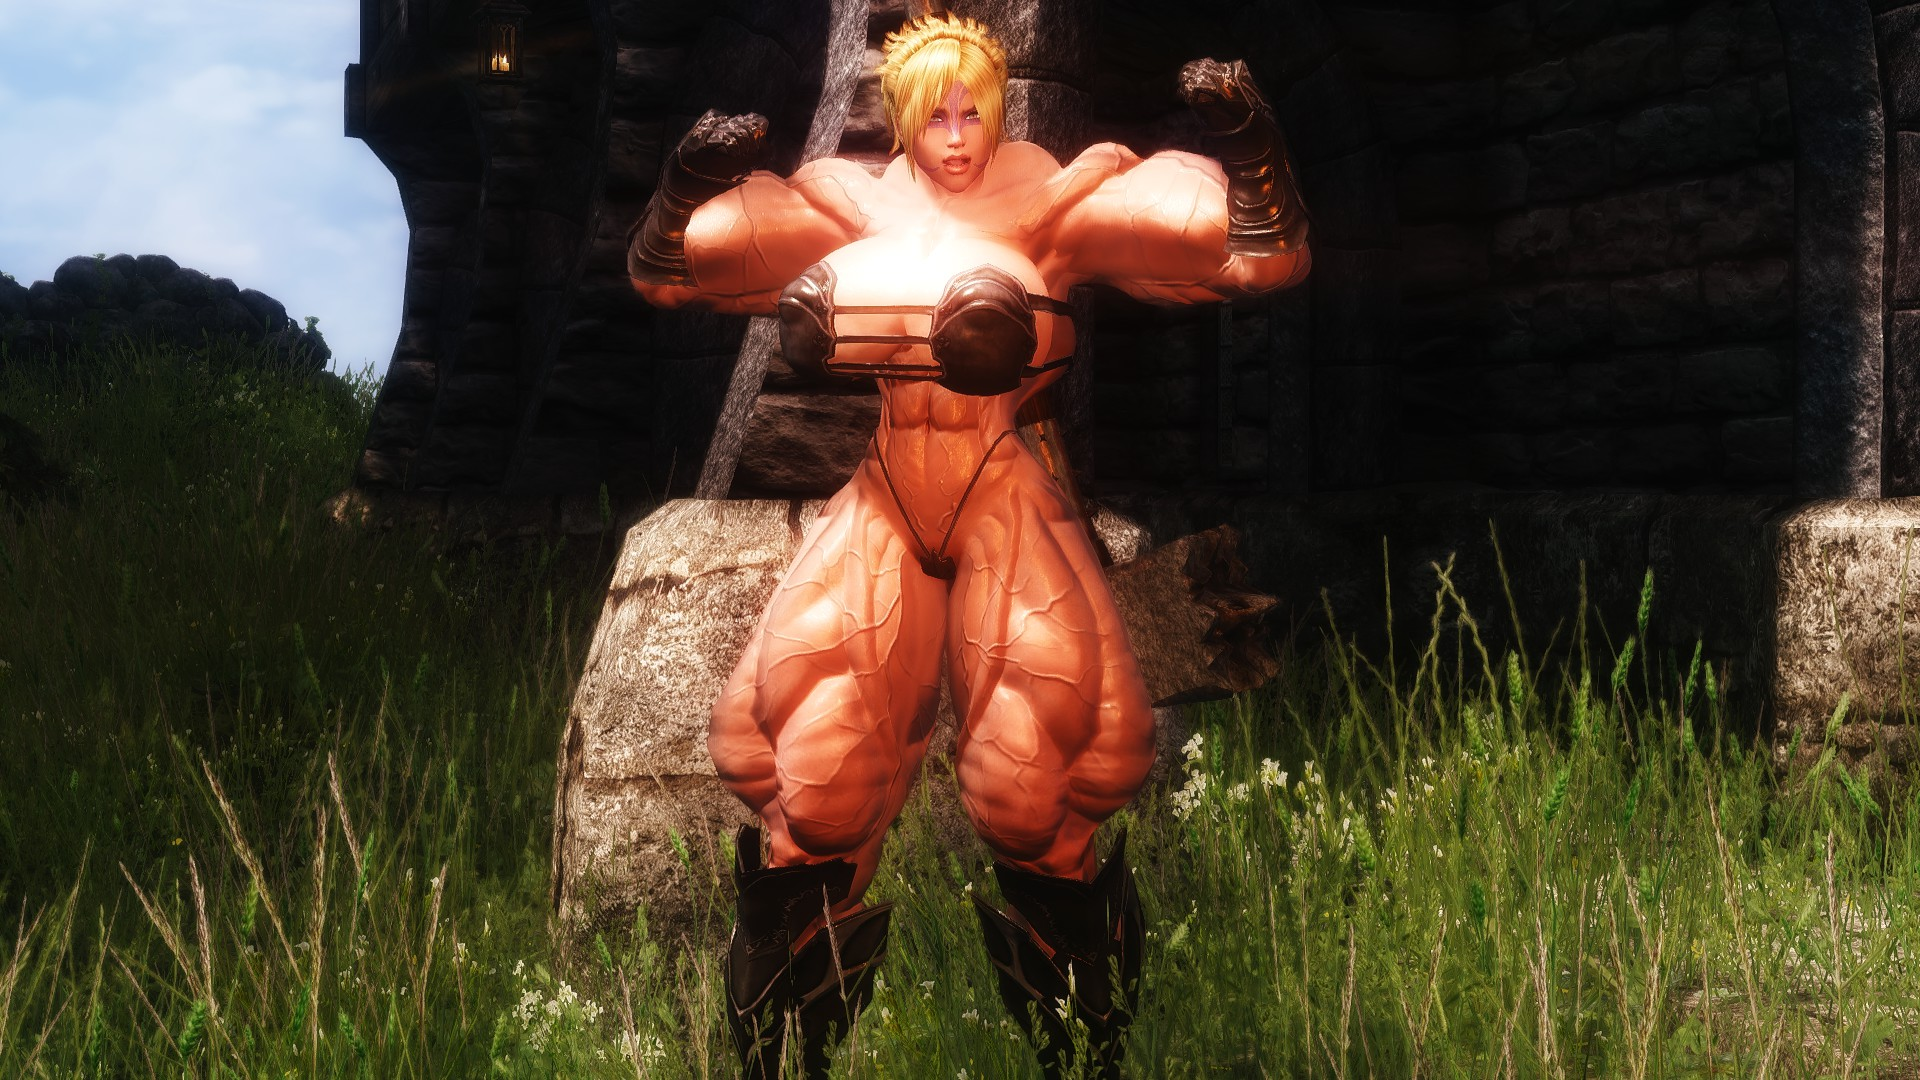 Amazons of Skyrim - Page 3 - Downloads - Skyrim Adult & Sex